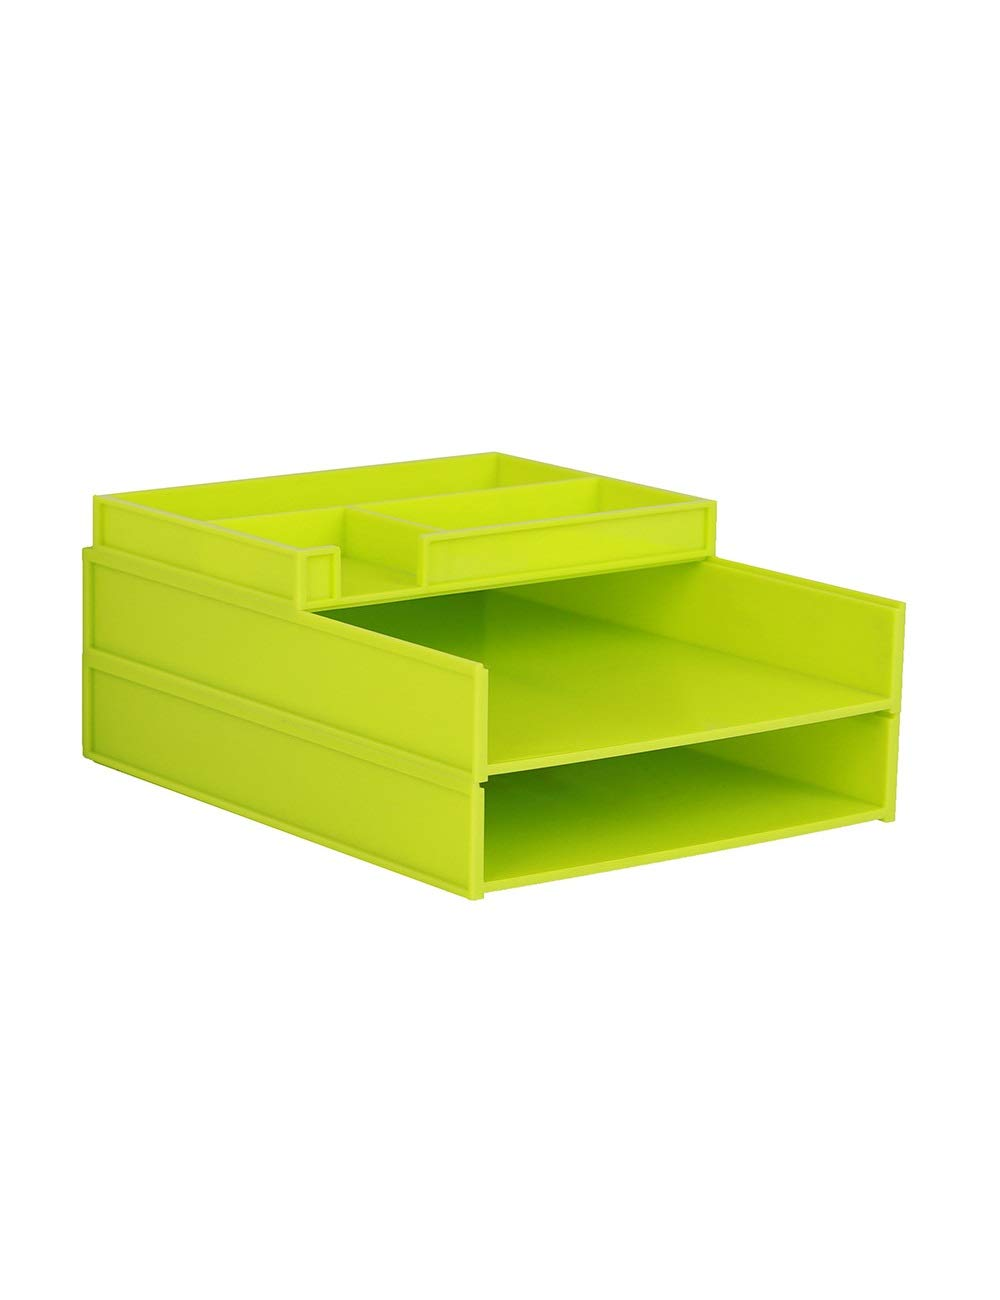 File Cabinets Drawer Mobile Multi-Function Cabinet 2 Drawers Color: Green, Blue, White Office Desktop File Storage Cabinet Storage (Color : C)